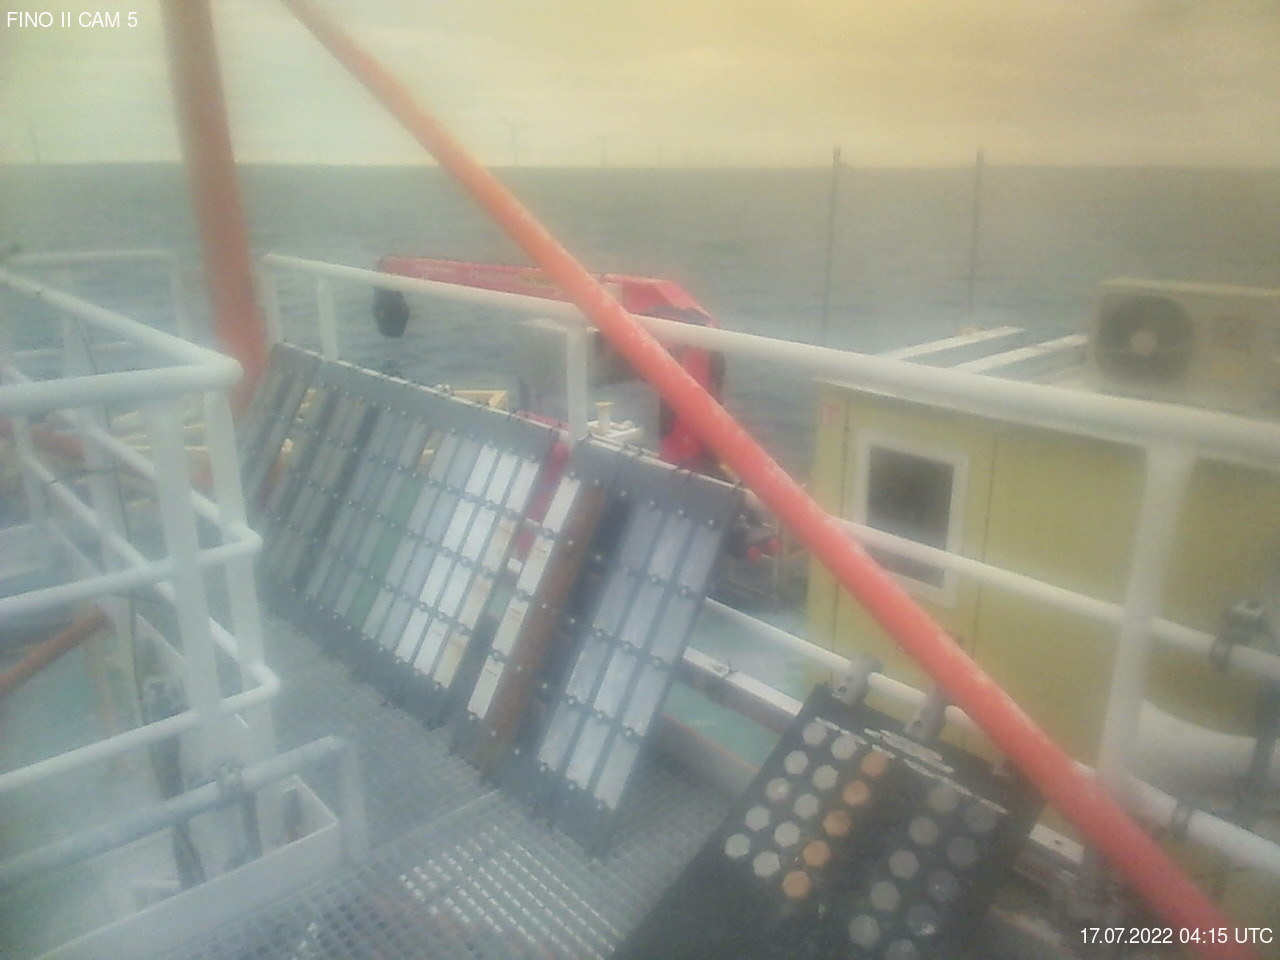 Overlooking the deck of the research platform